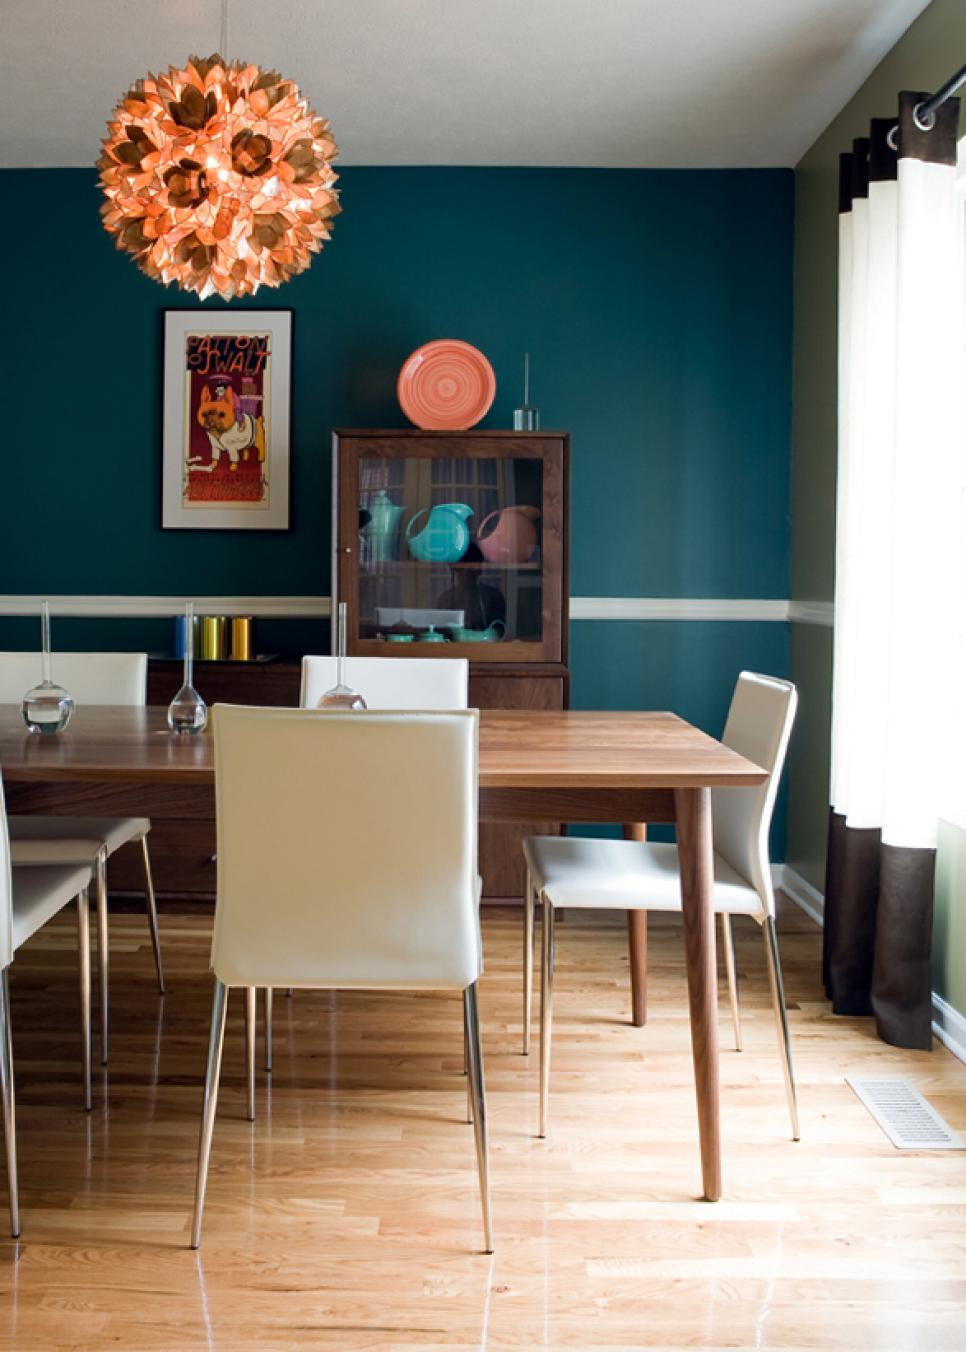 Add midcentury modern style to your home hgtv for Contemporary dining room decorating ideas